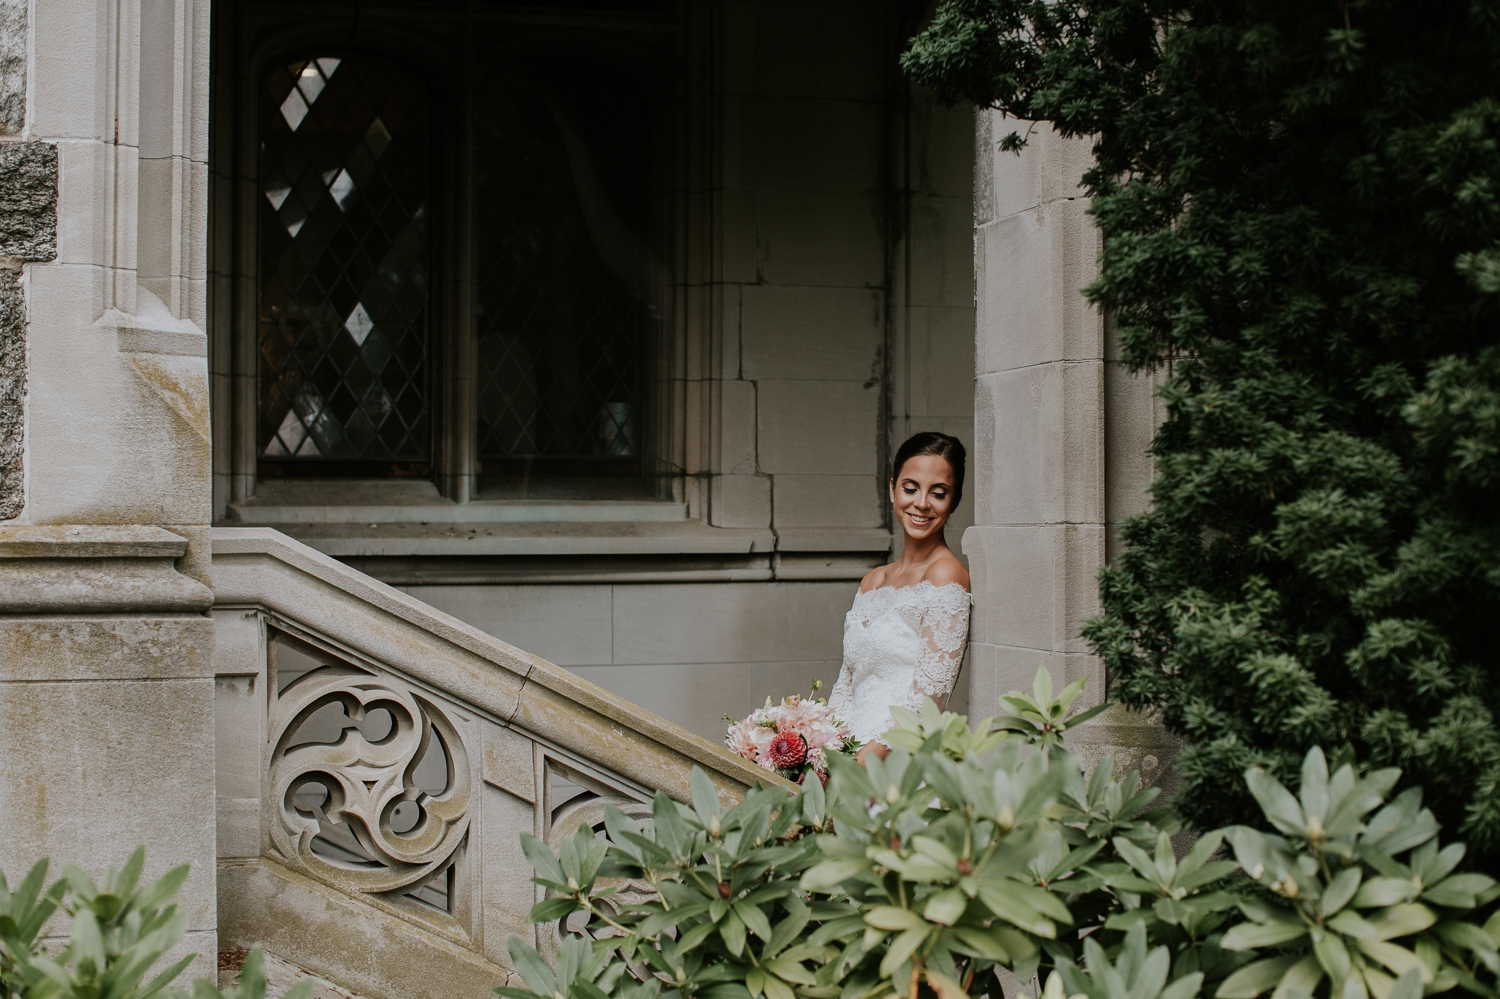 hempstead_house_new_york_wedding_photographer 23.jpg